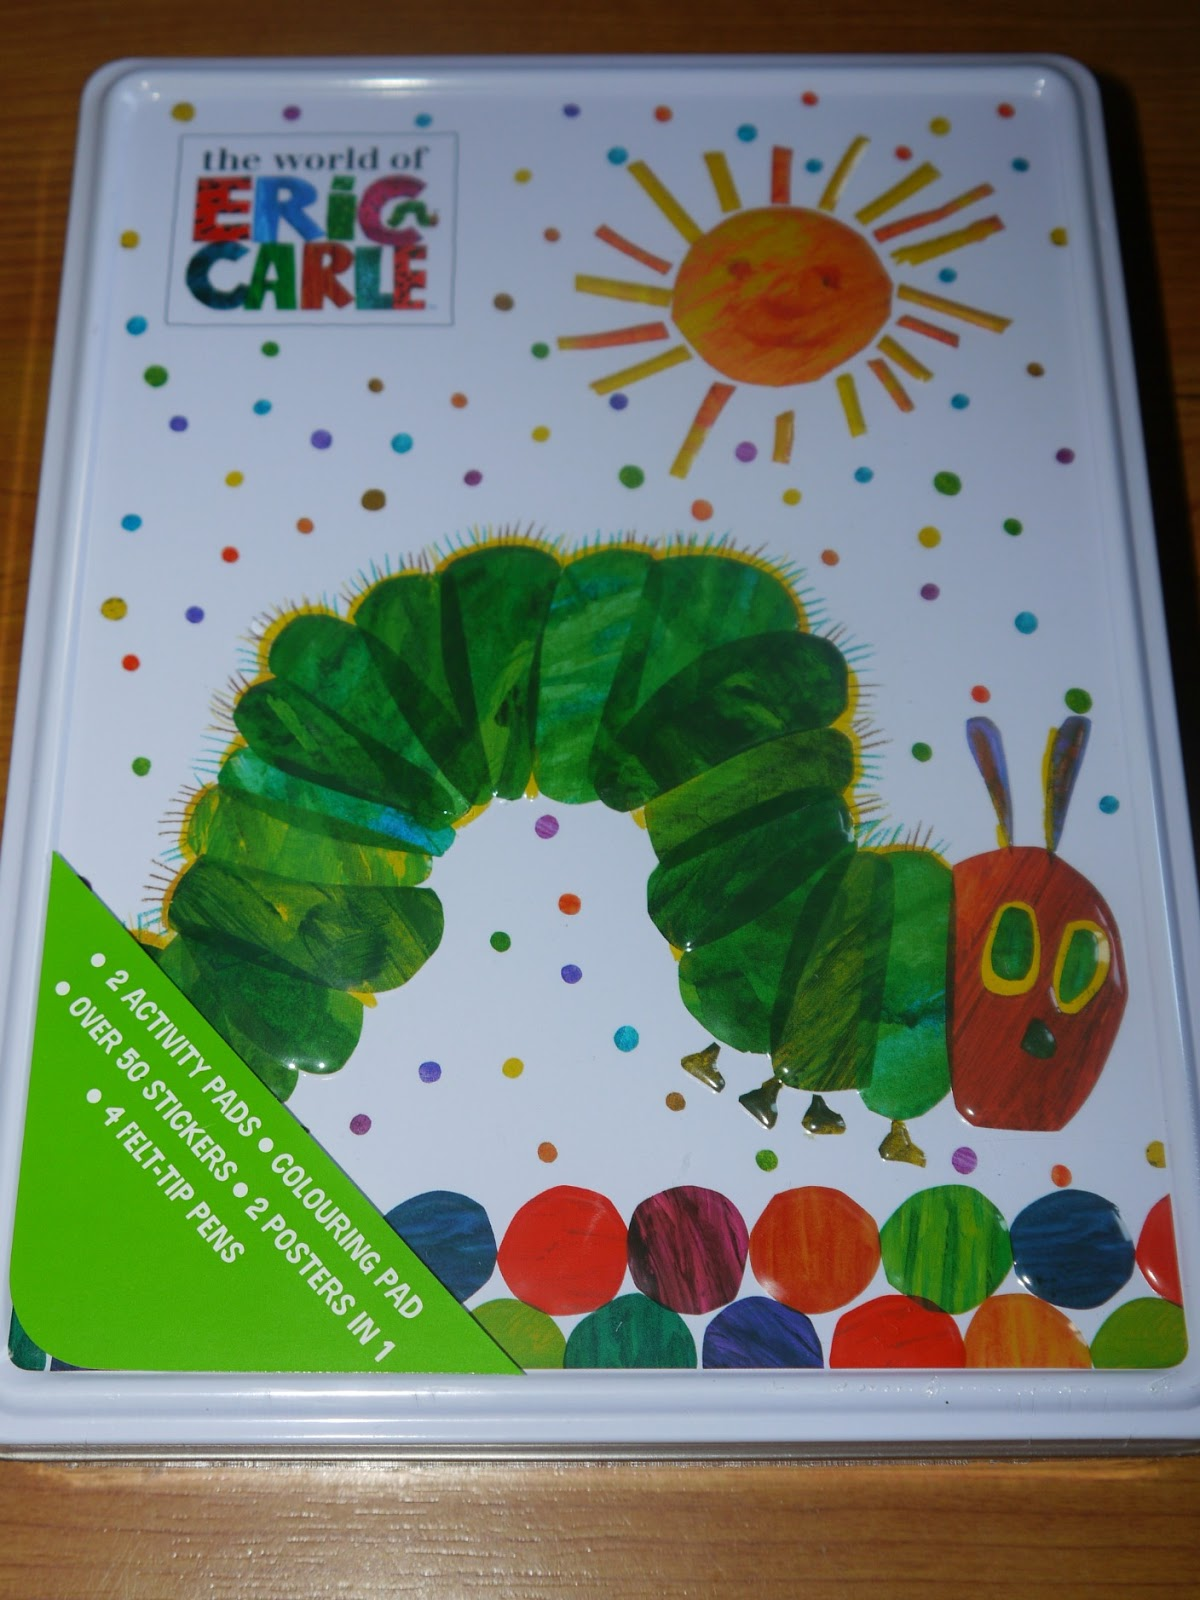 Inside The Wendy House Celebrate The World Of Eric Carle And The Very Hungry Caterpillar